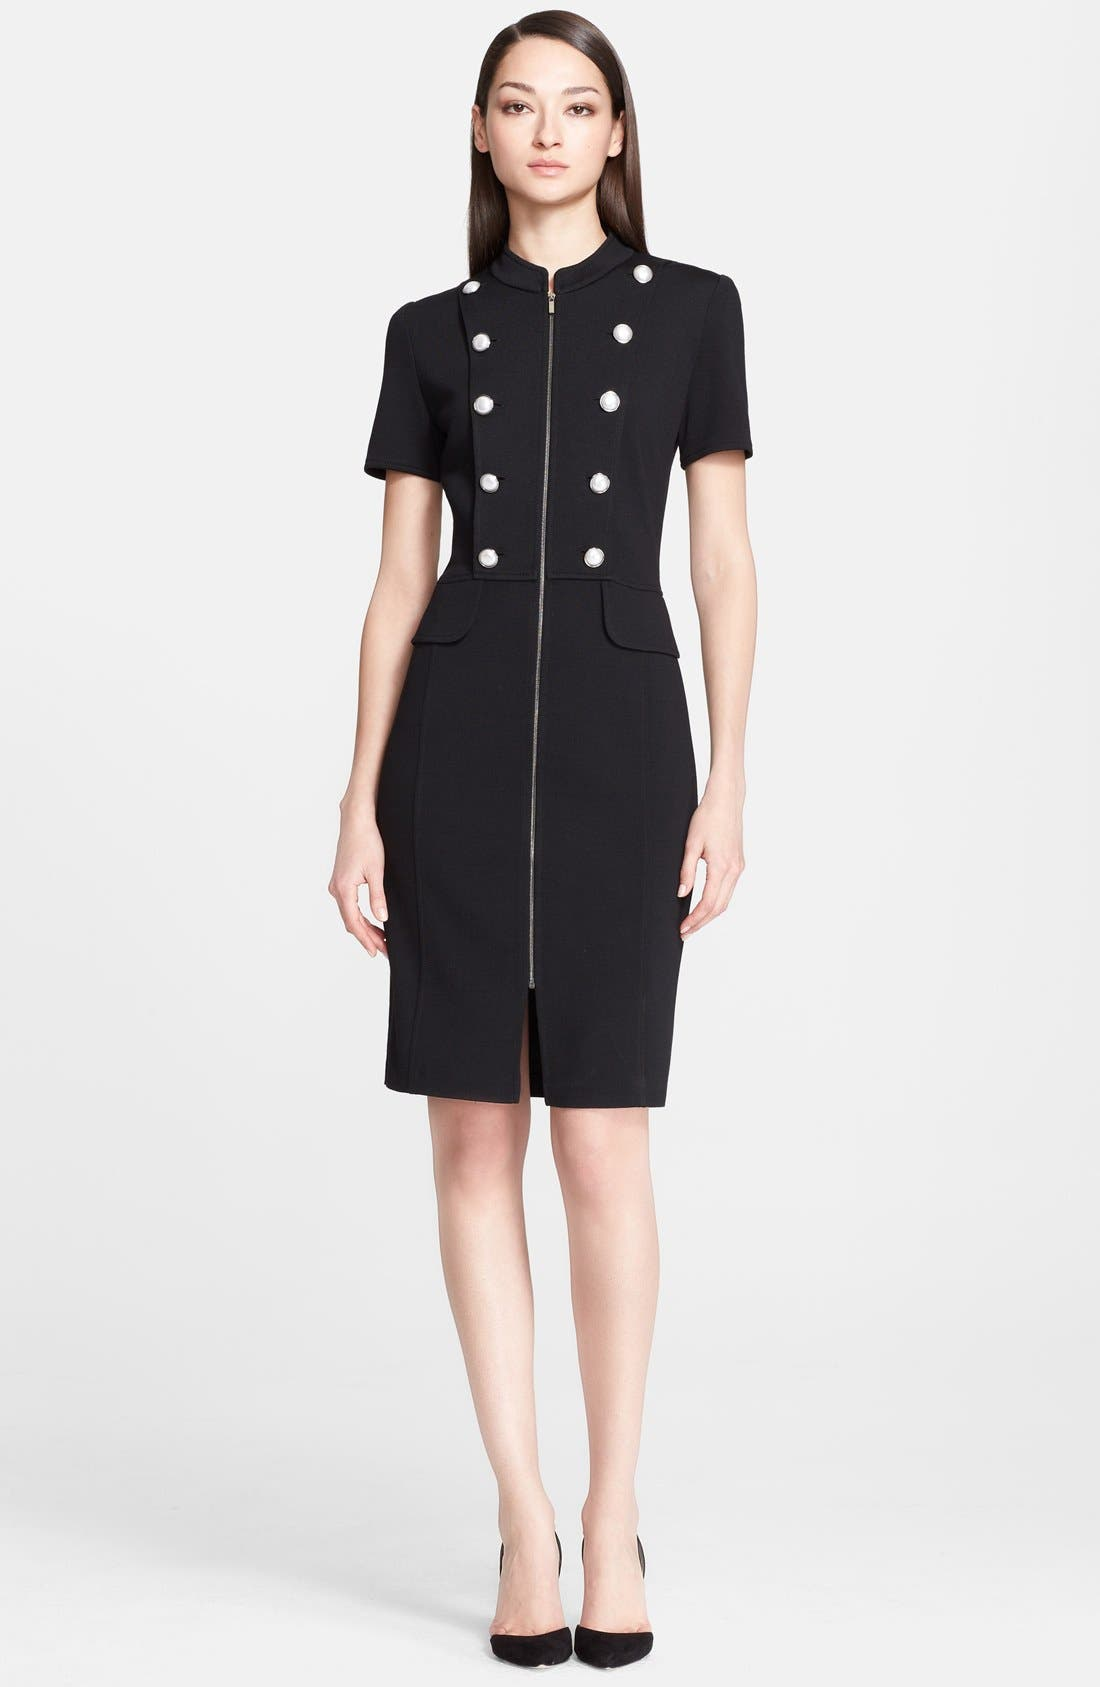 Alternate Image 1 Selected - St. John Collection Milano Knit Military Dress